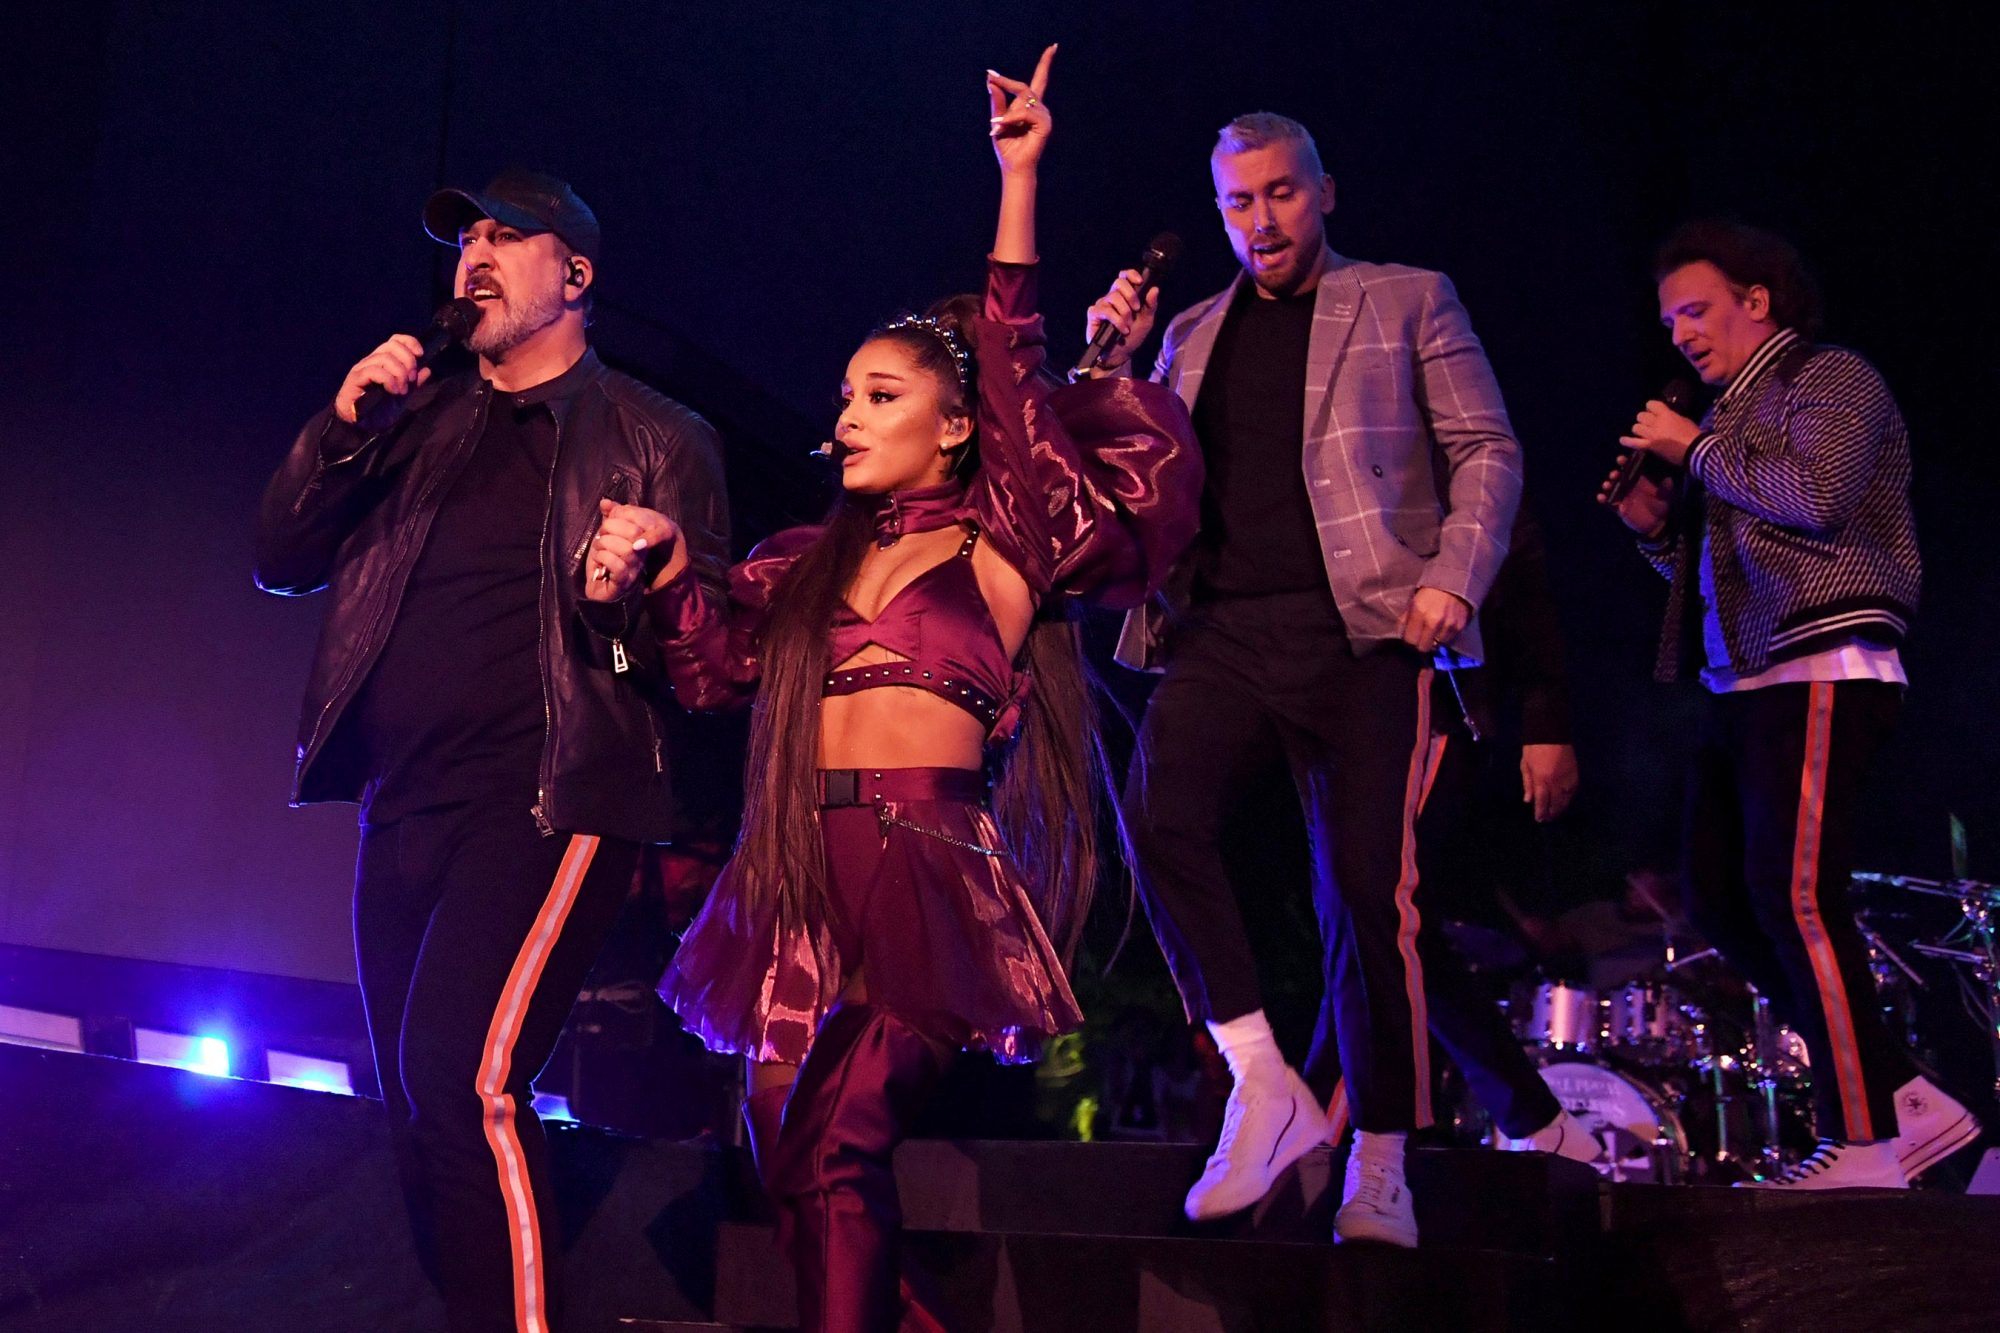 Joey Fatone, Ariana Grande, Lance Bass, and JC Chasez